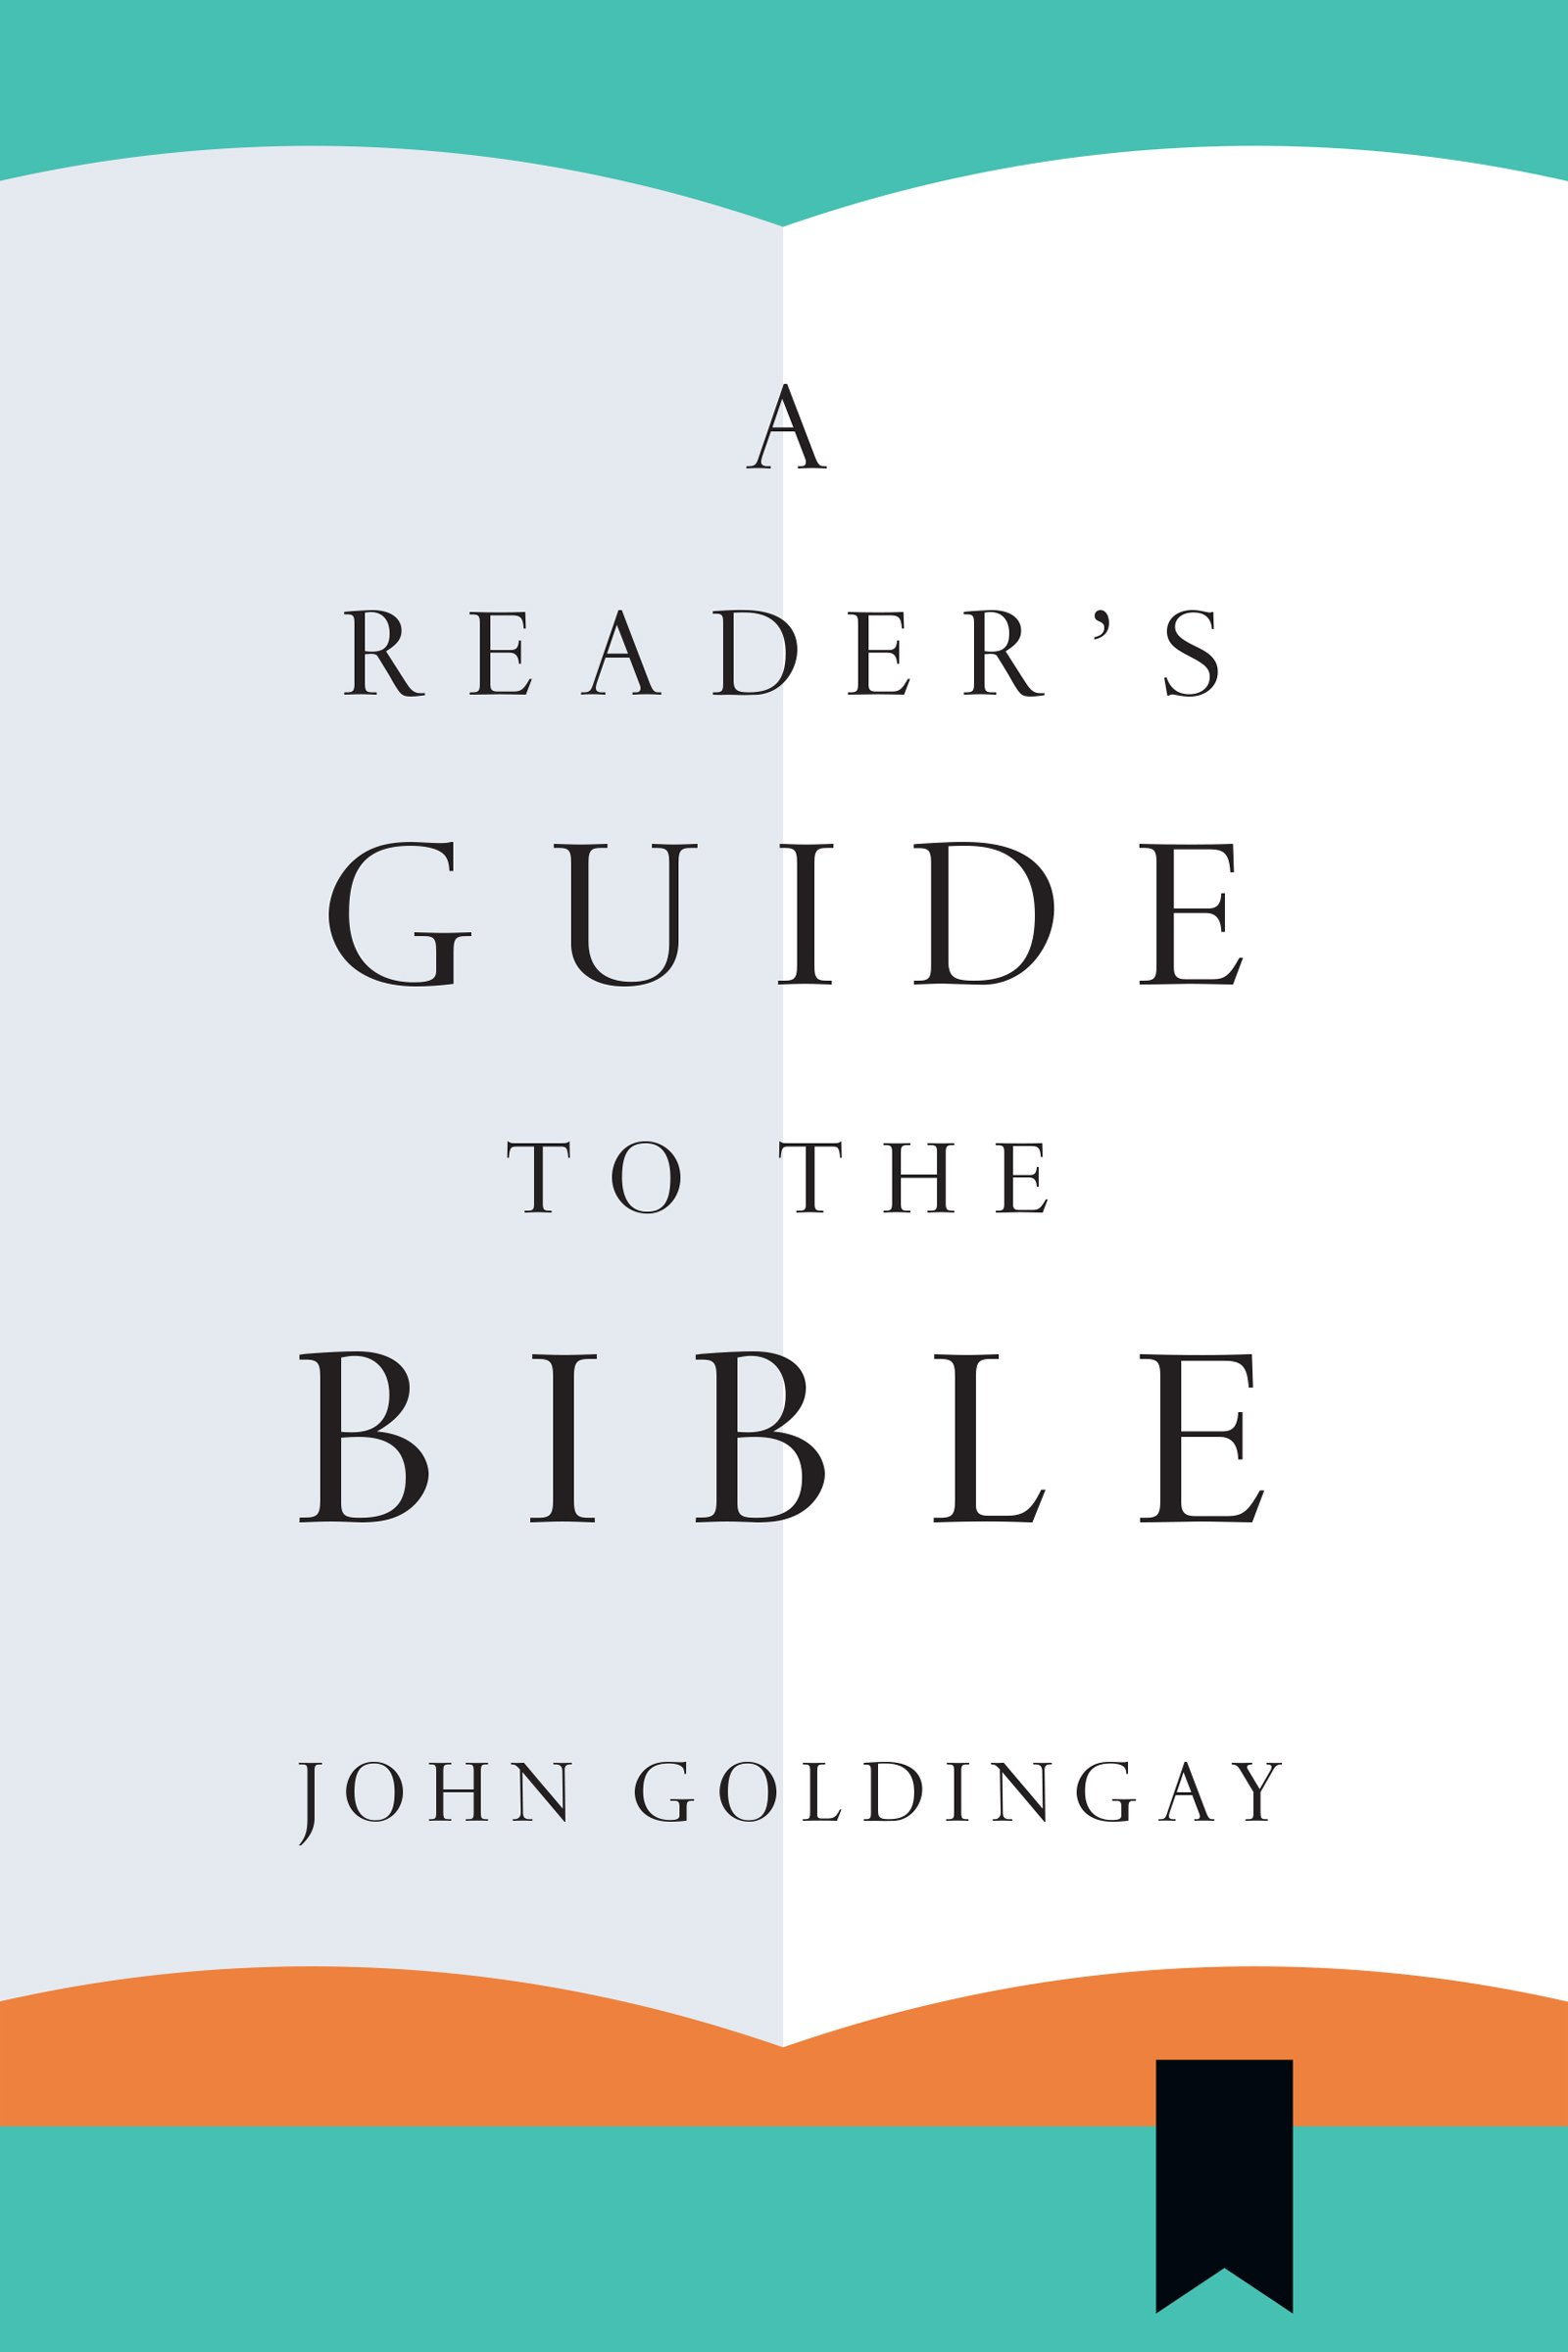 A readers guide to the bible john goldingay 9780830851744 amazon a readers guide to the bible john goldingay 9780830851744 amazon books fandeluxe Gallery